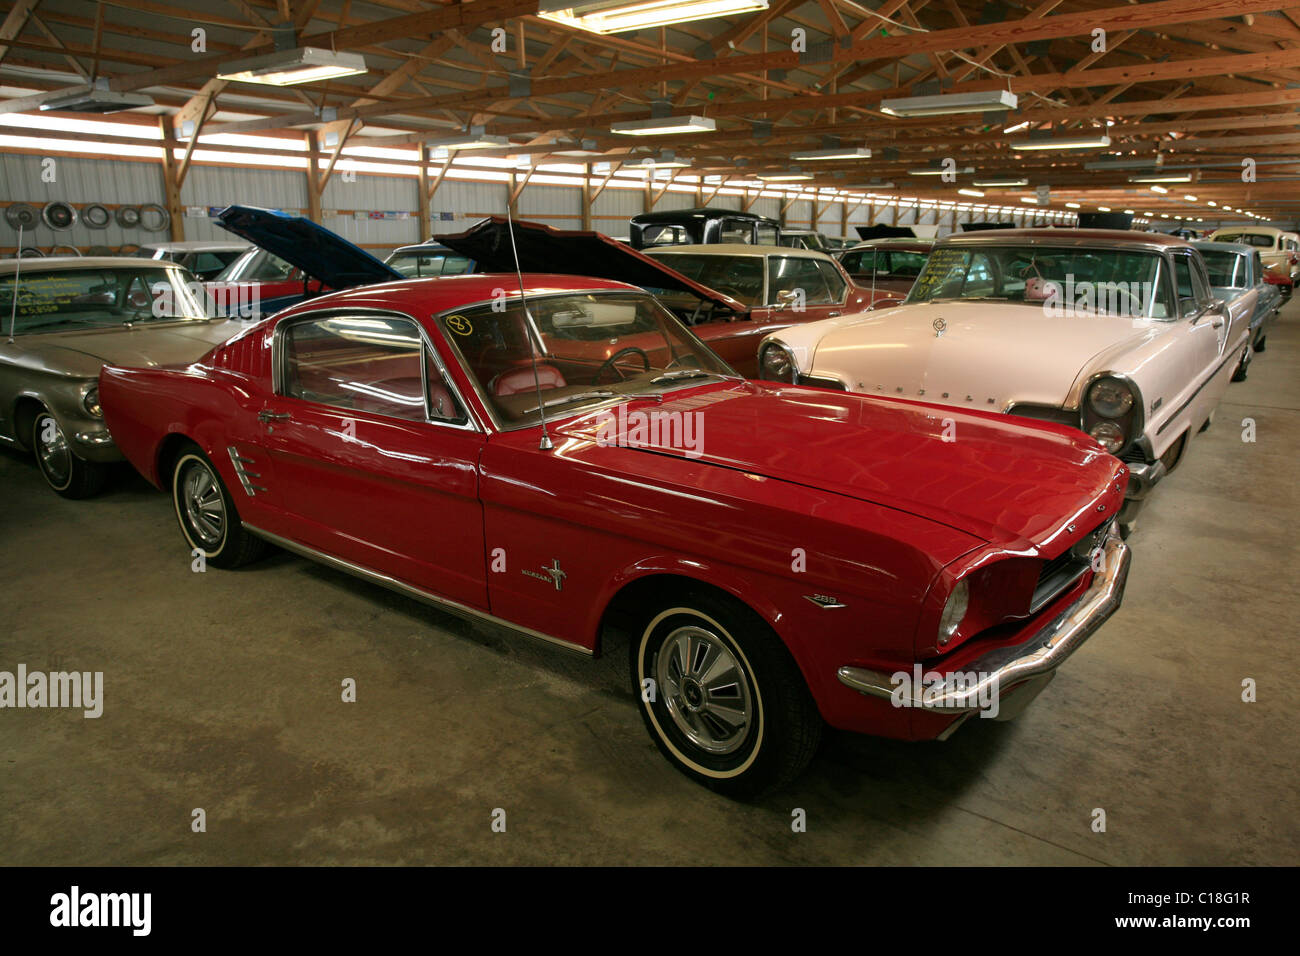 1965 V8 Ford Mustang GT Fastback in the vintage car show Country ...